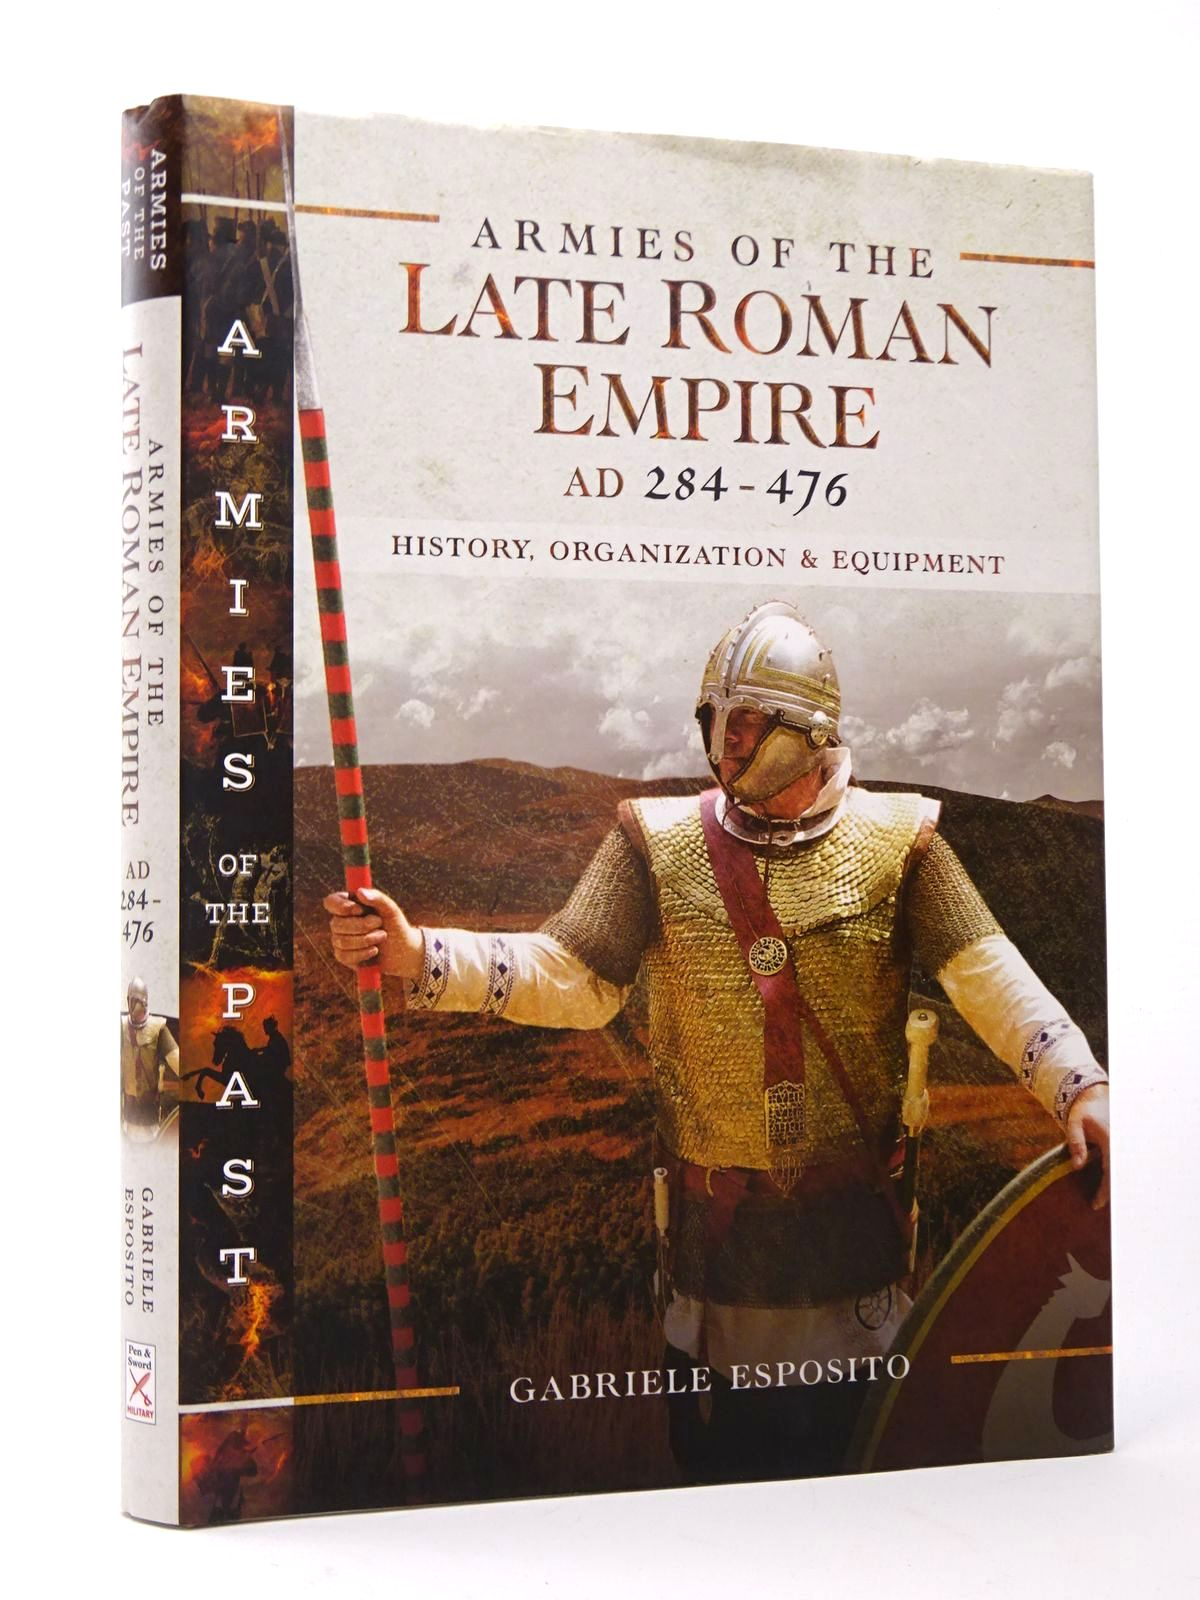 Photo of ARMIES OF THE LATE ROMAN EMPIRE AD 284 TO 476: HISTORY, ORGANIZATION AND EQUIPMENT written by Esposito, Gabriele published by Pen & Sword Military (STOCK CODE: 1817544)  for sale by Stella & Rose's Books